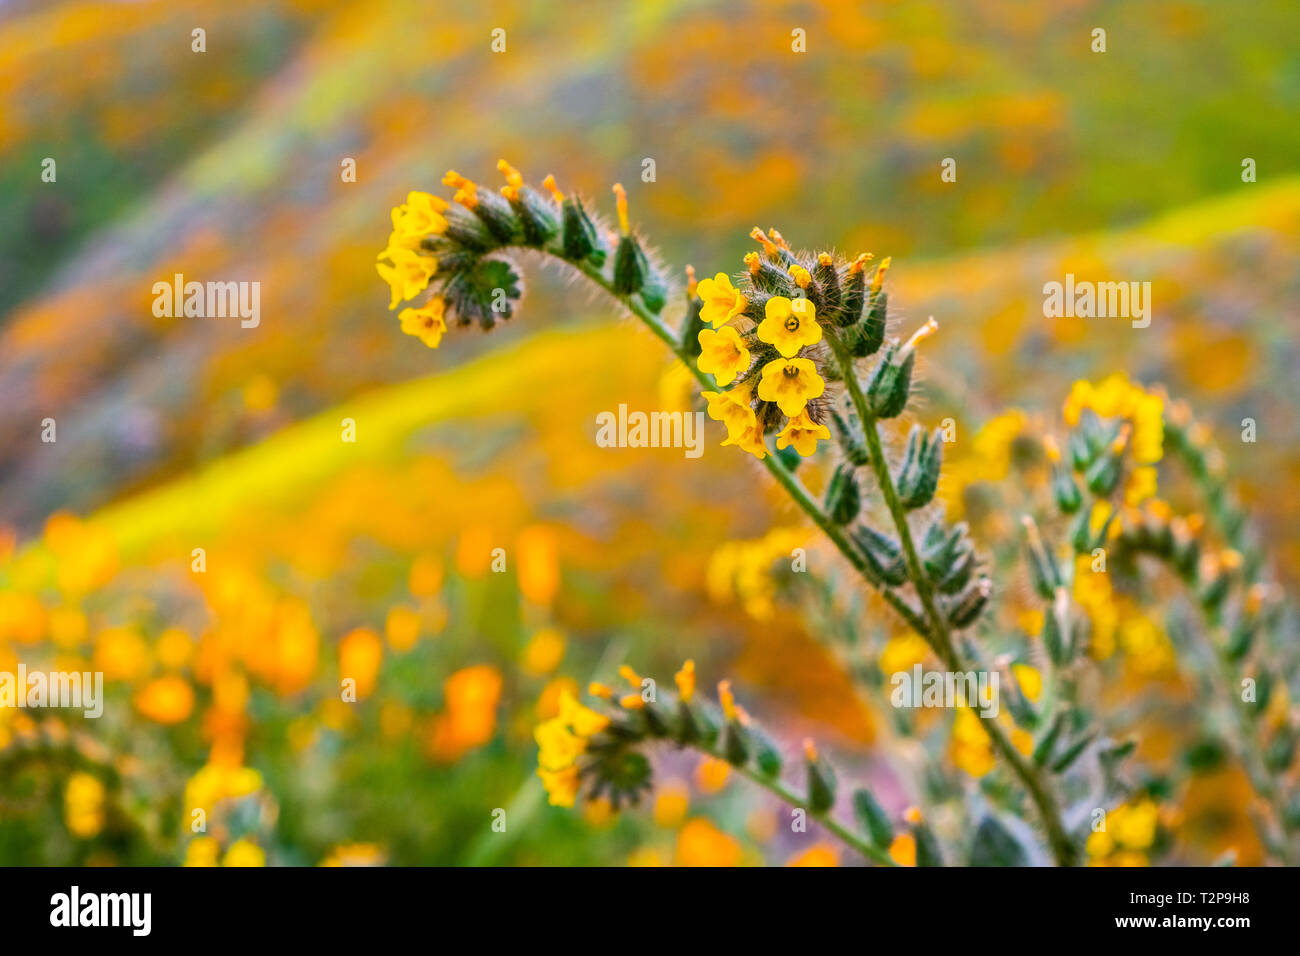 Close up of Fiddleneck (Amsinckia tesselata) wildflowers blooming on the hills of Walker Canyon, Lake Elsinore, California - Stock Image